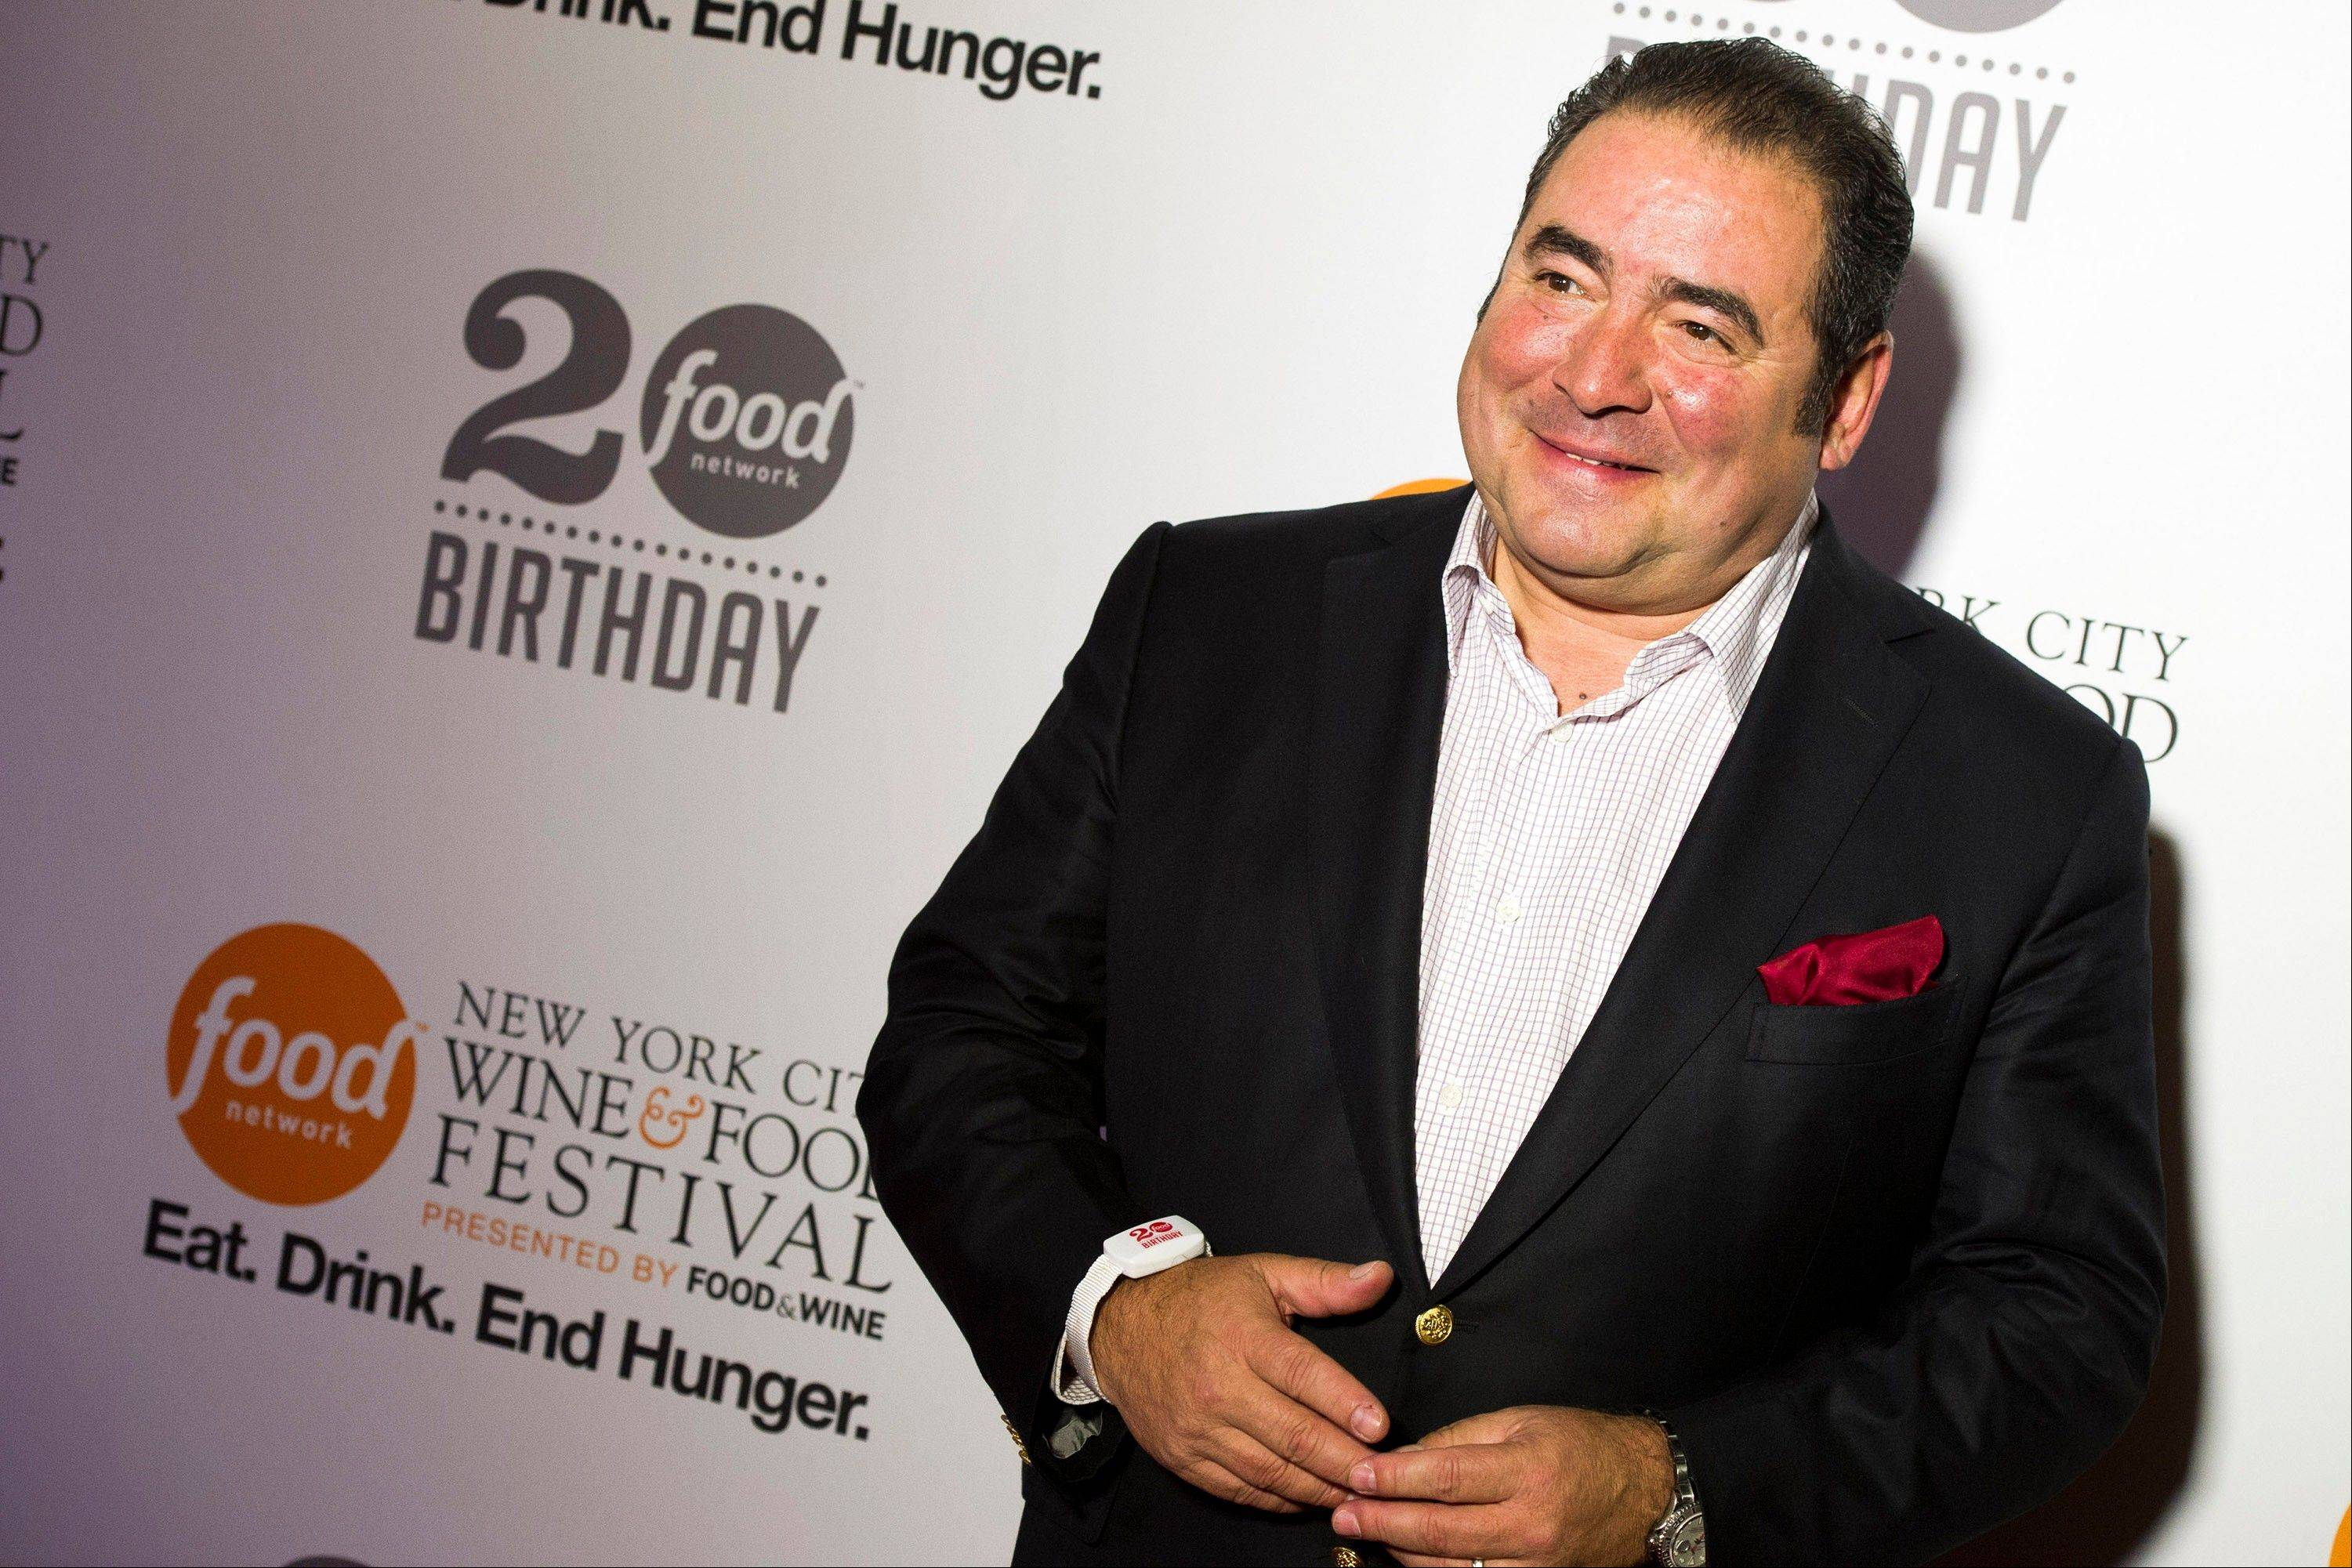 Emeril Lagasse attends the Food Network's 20th birthday party on Thursday in New York.